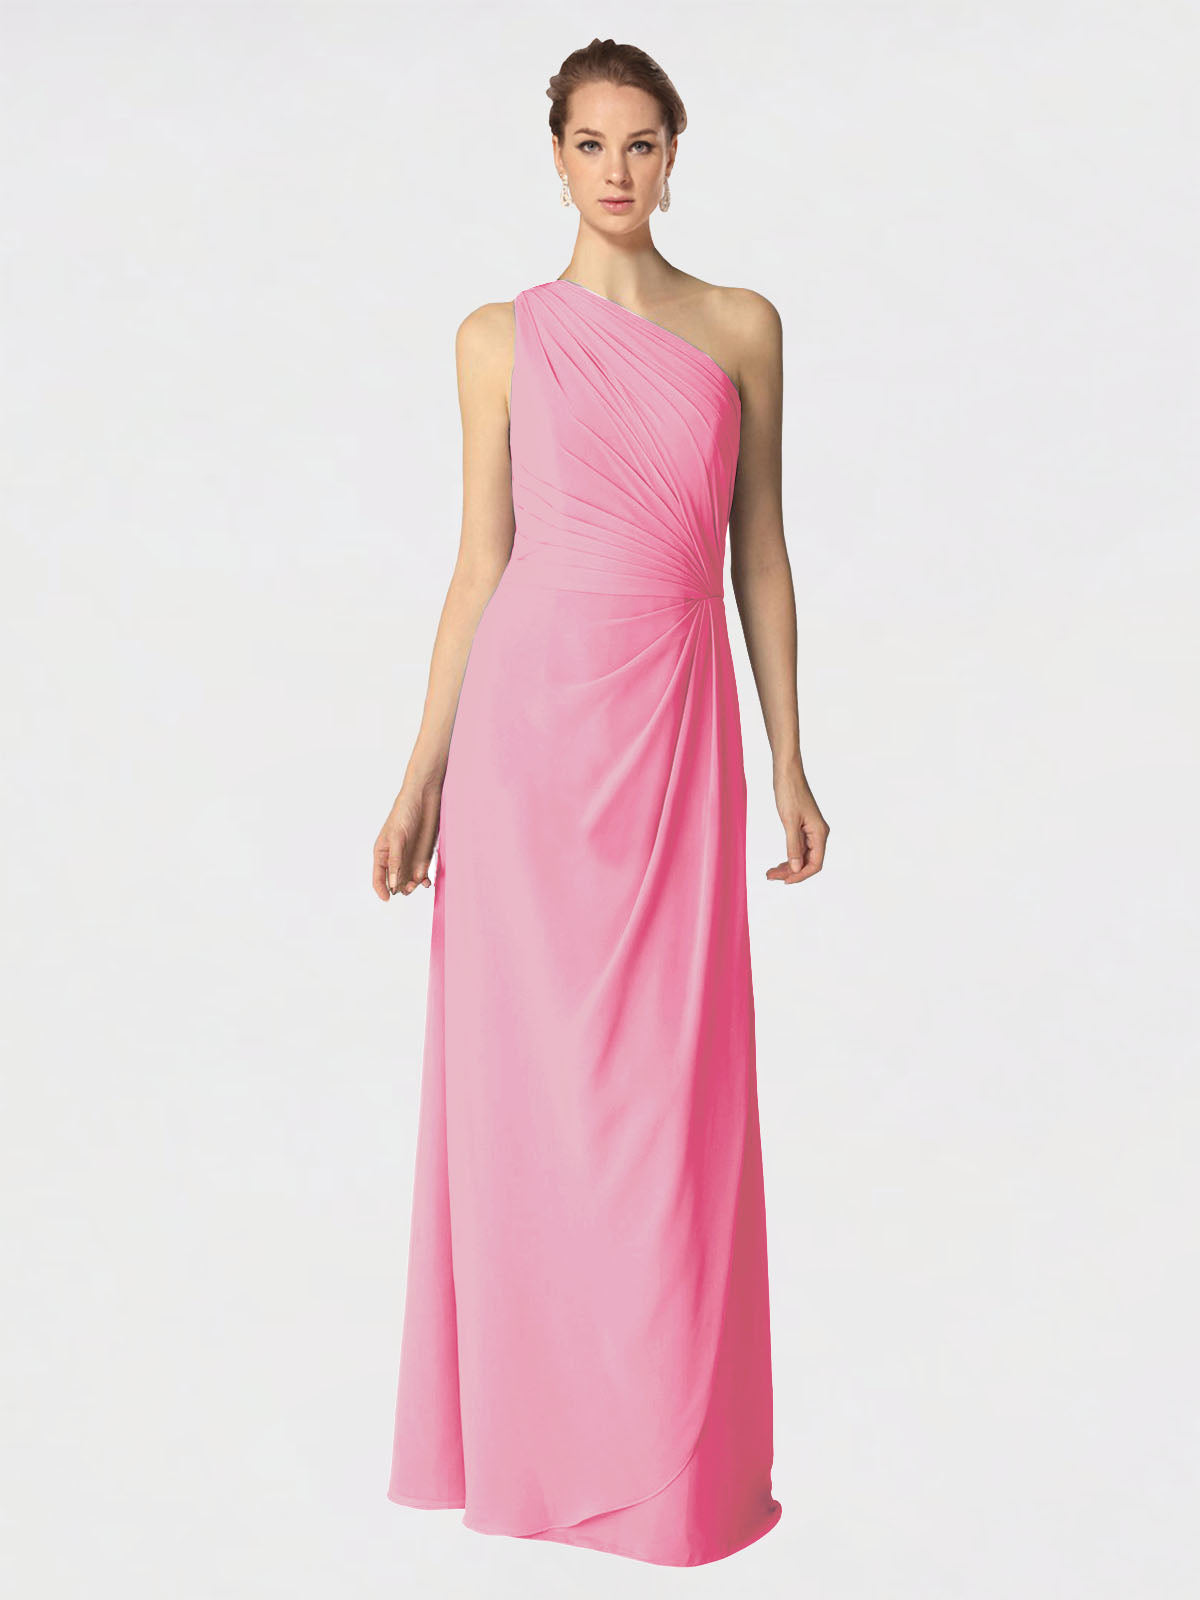 Long A-Line One Shoulder Sleeveless Hot Pink Chiffon Bridesmaid Dress Aurora